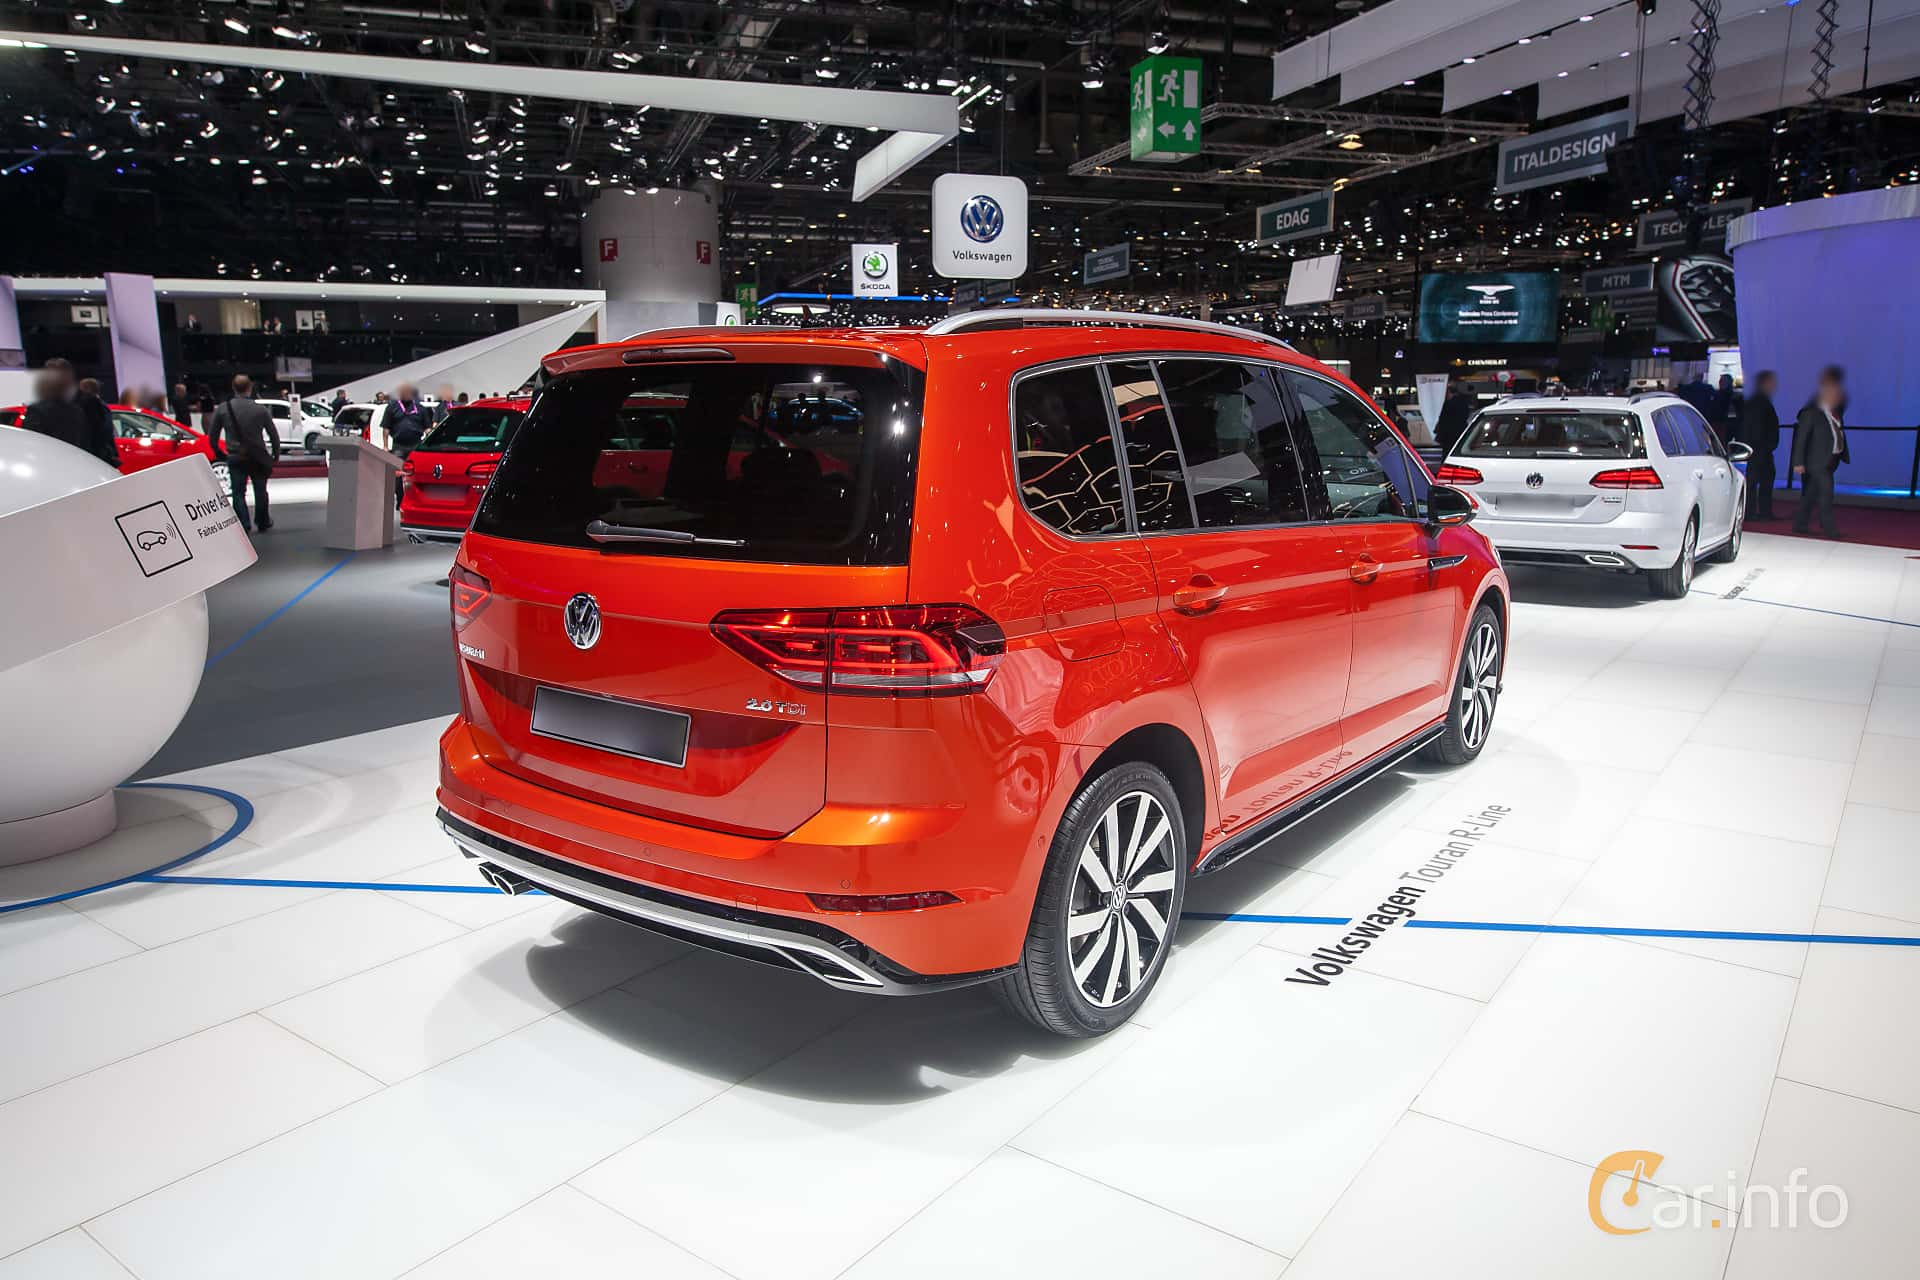 volkswagen touran 2 0 tdi manuell 150hk 2017 at geneva. Black Bedroom Furniture Sets. Home Design Ideas